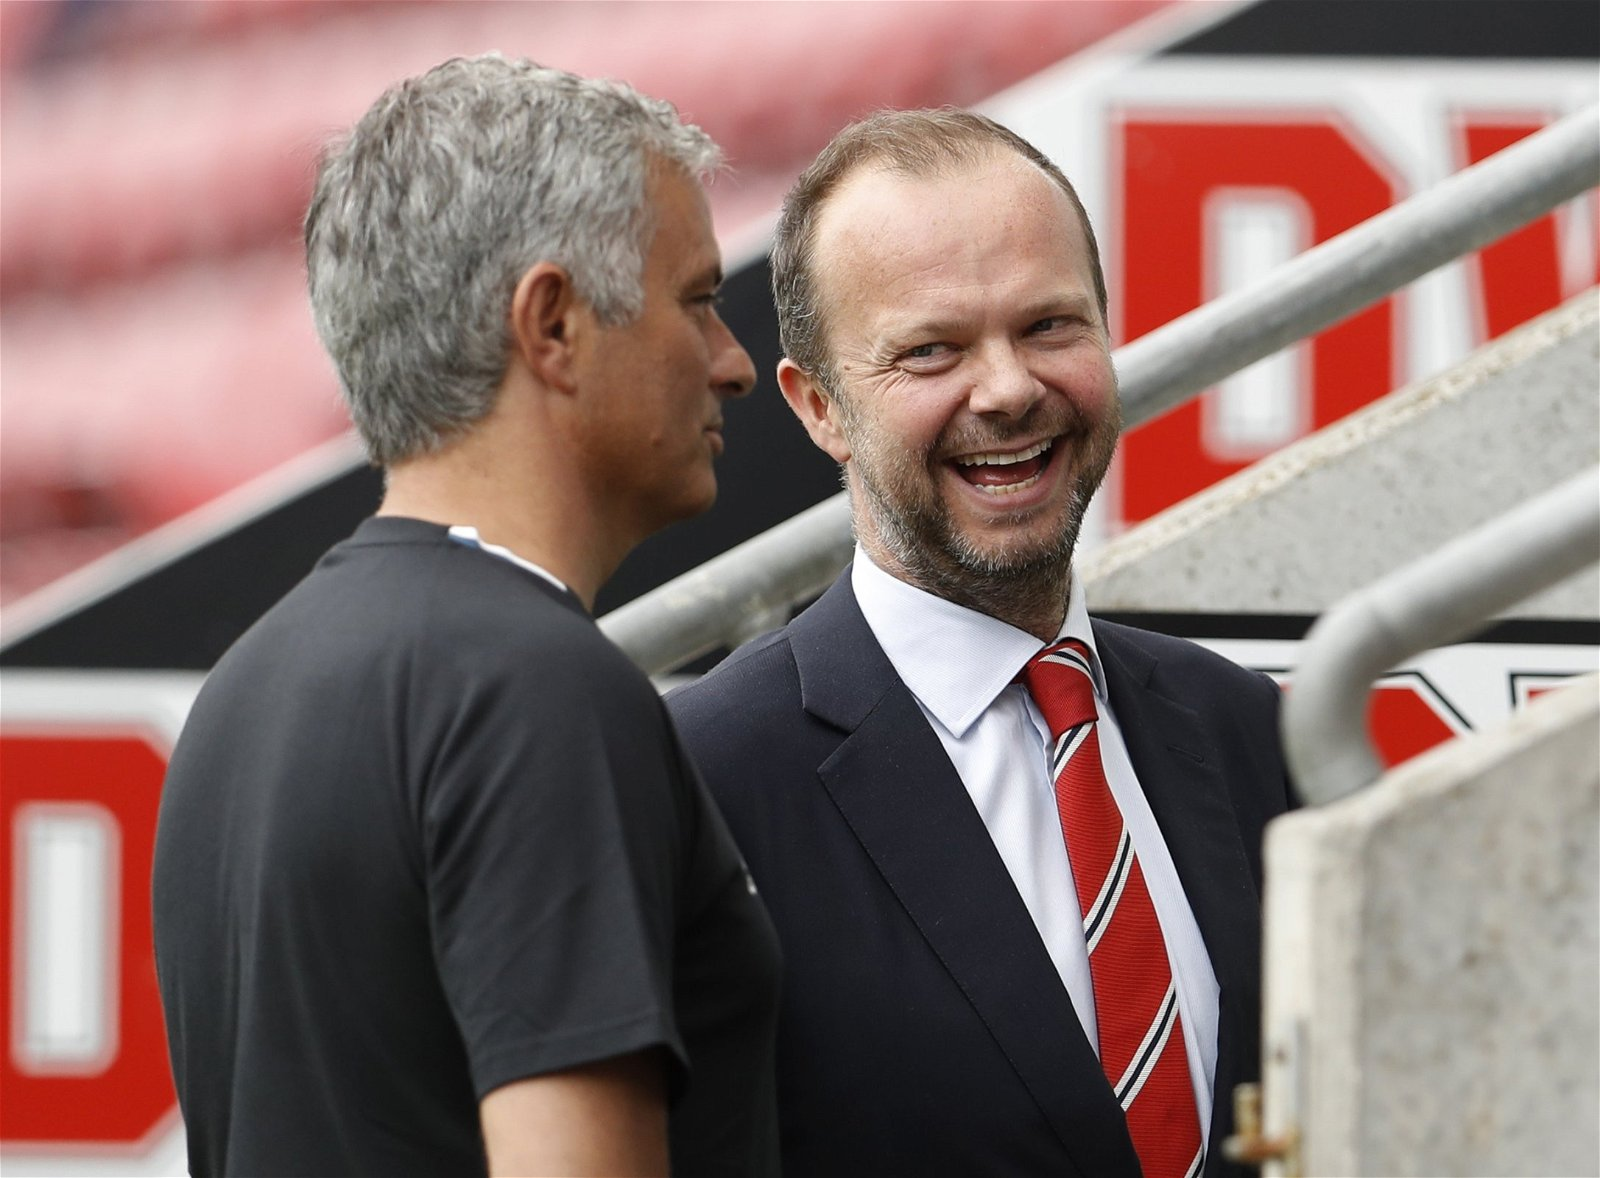 Ed Woodward shares a joke with Jose Mourinho